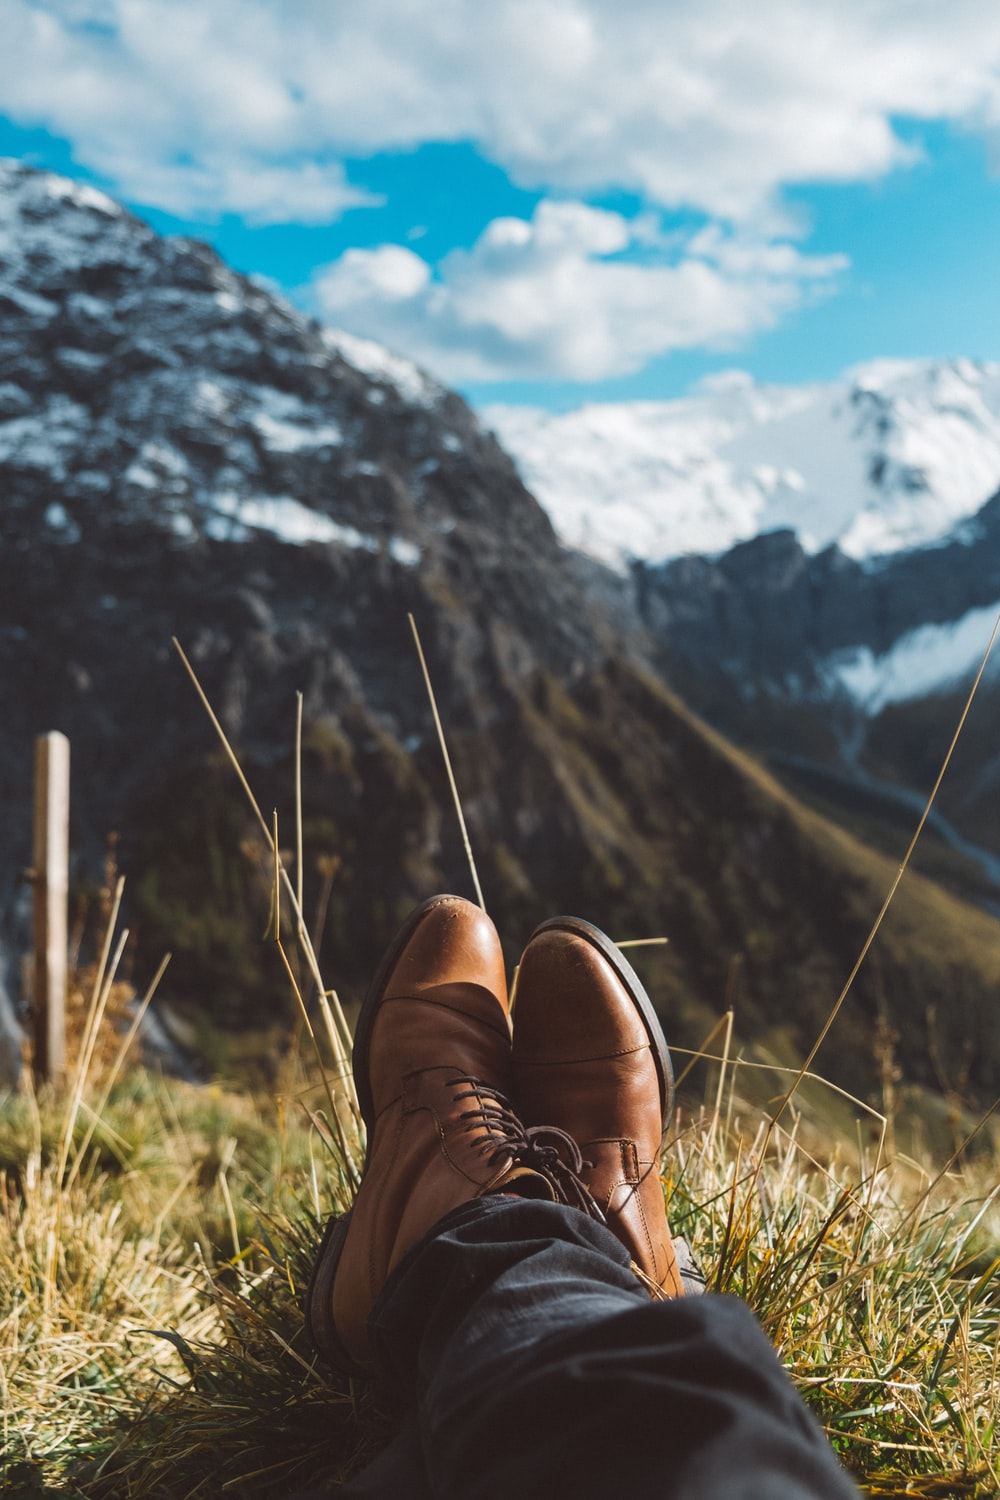 selective focus photo of person wearing brown dress shoes near mountains